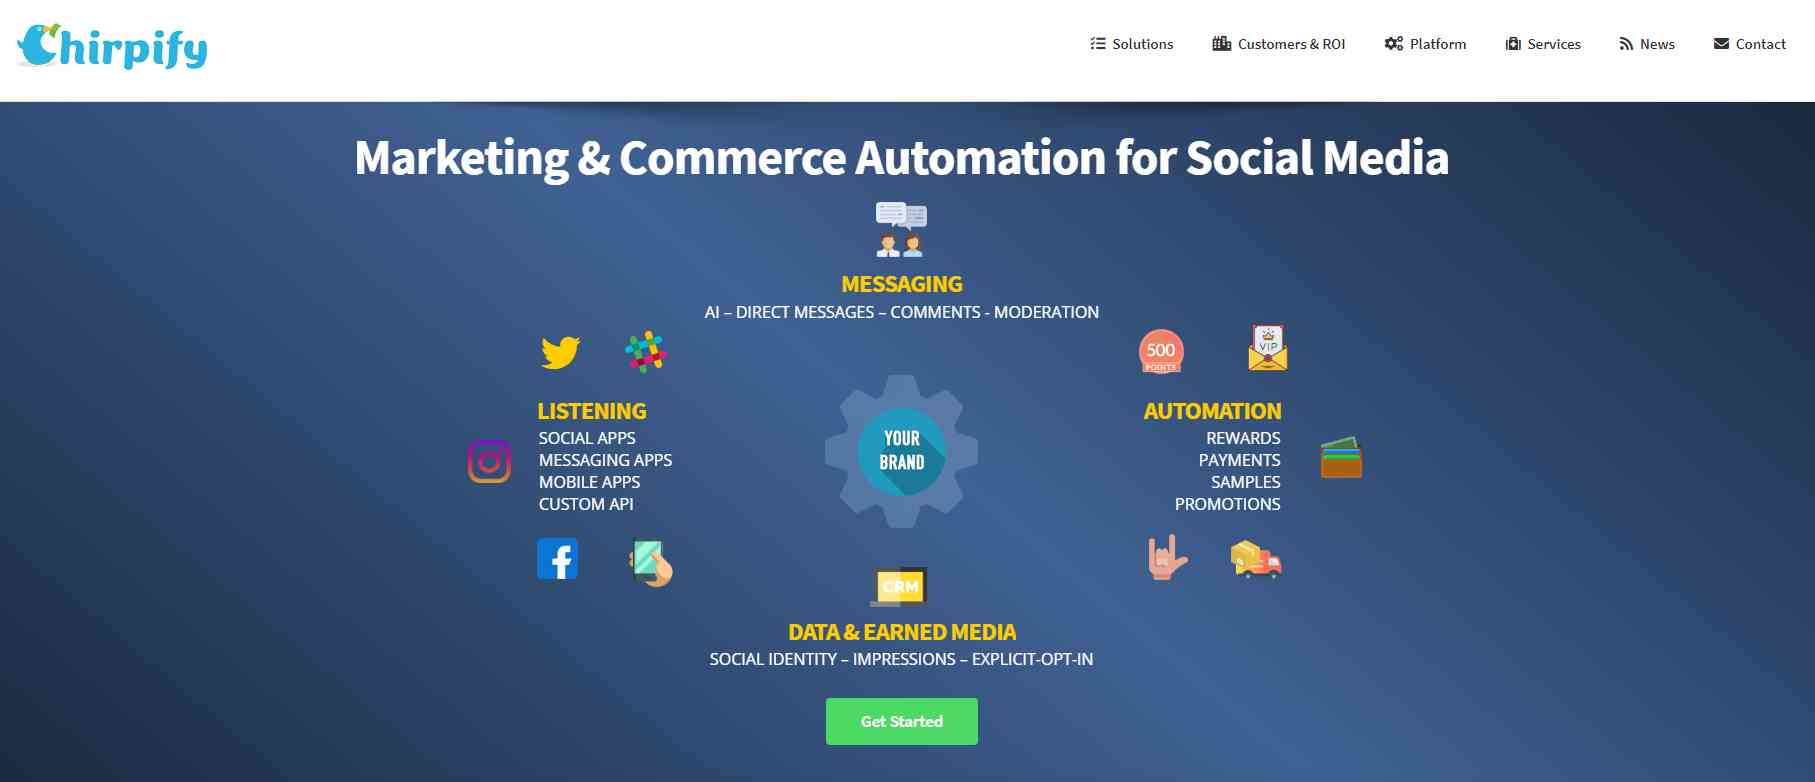 chirpify Customer Engagement Online Singapore The Complete Guide